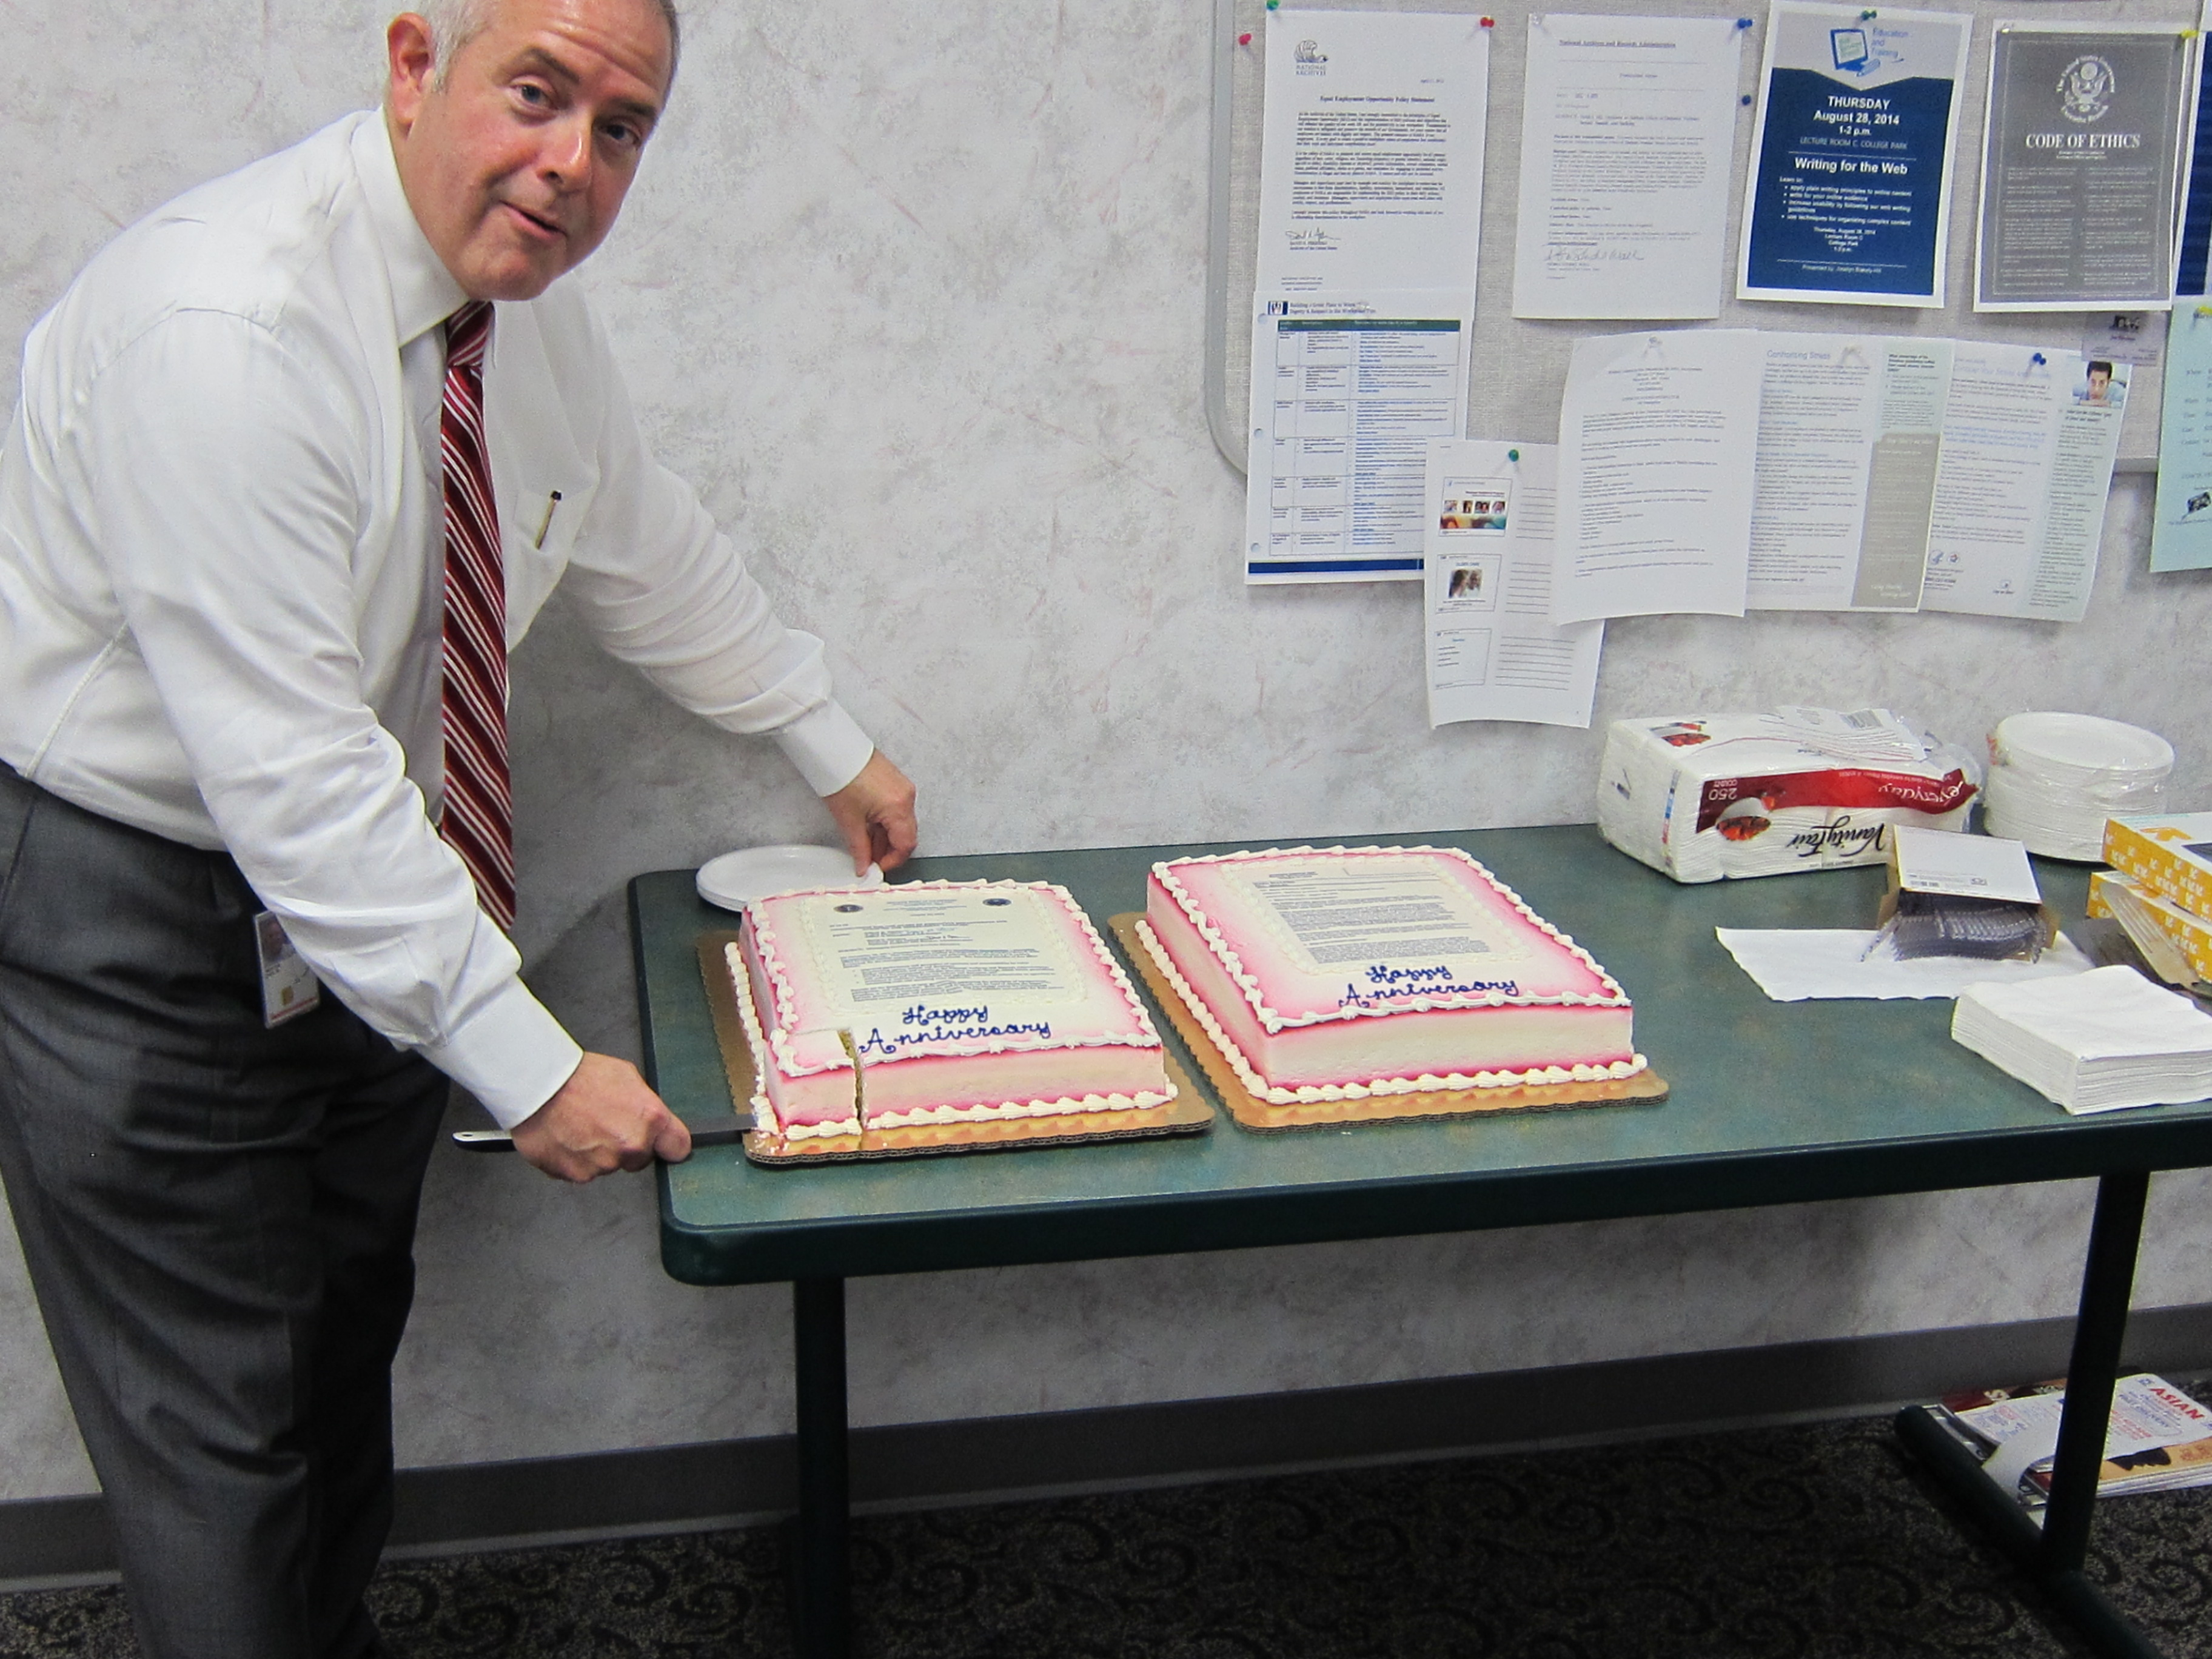 Chief Records Officer for the US Government Paul Wester cutting into the cakes